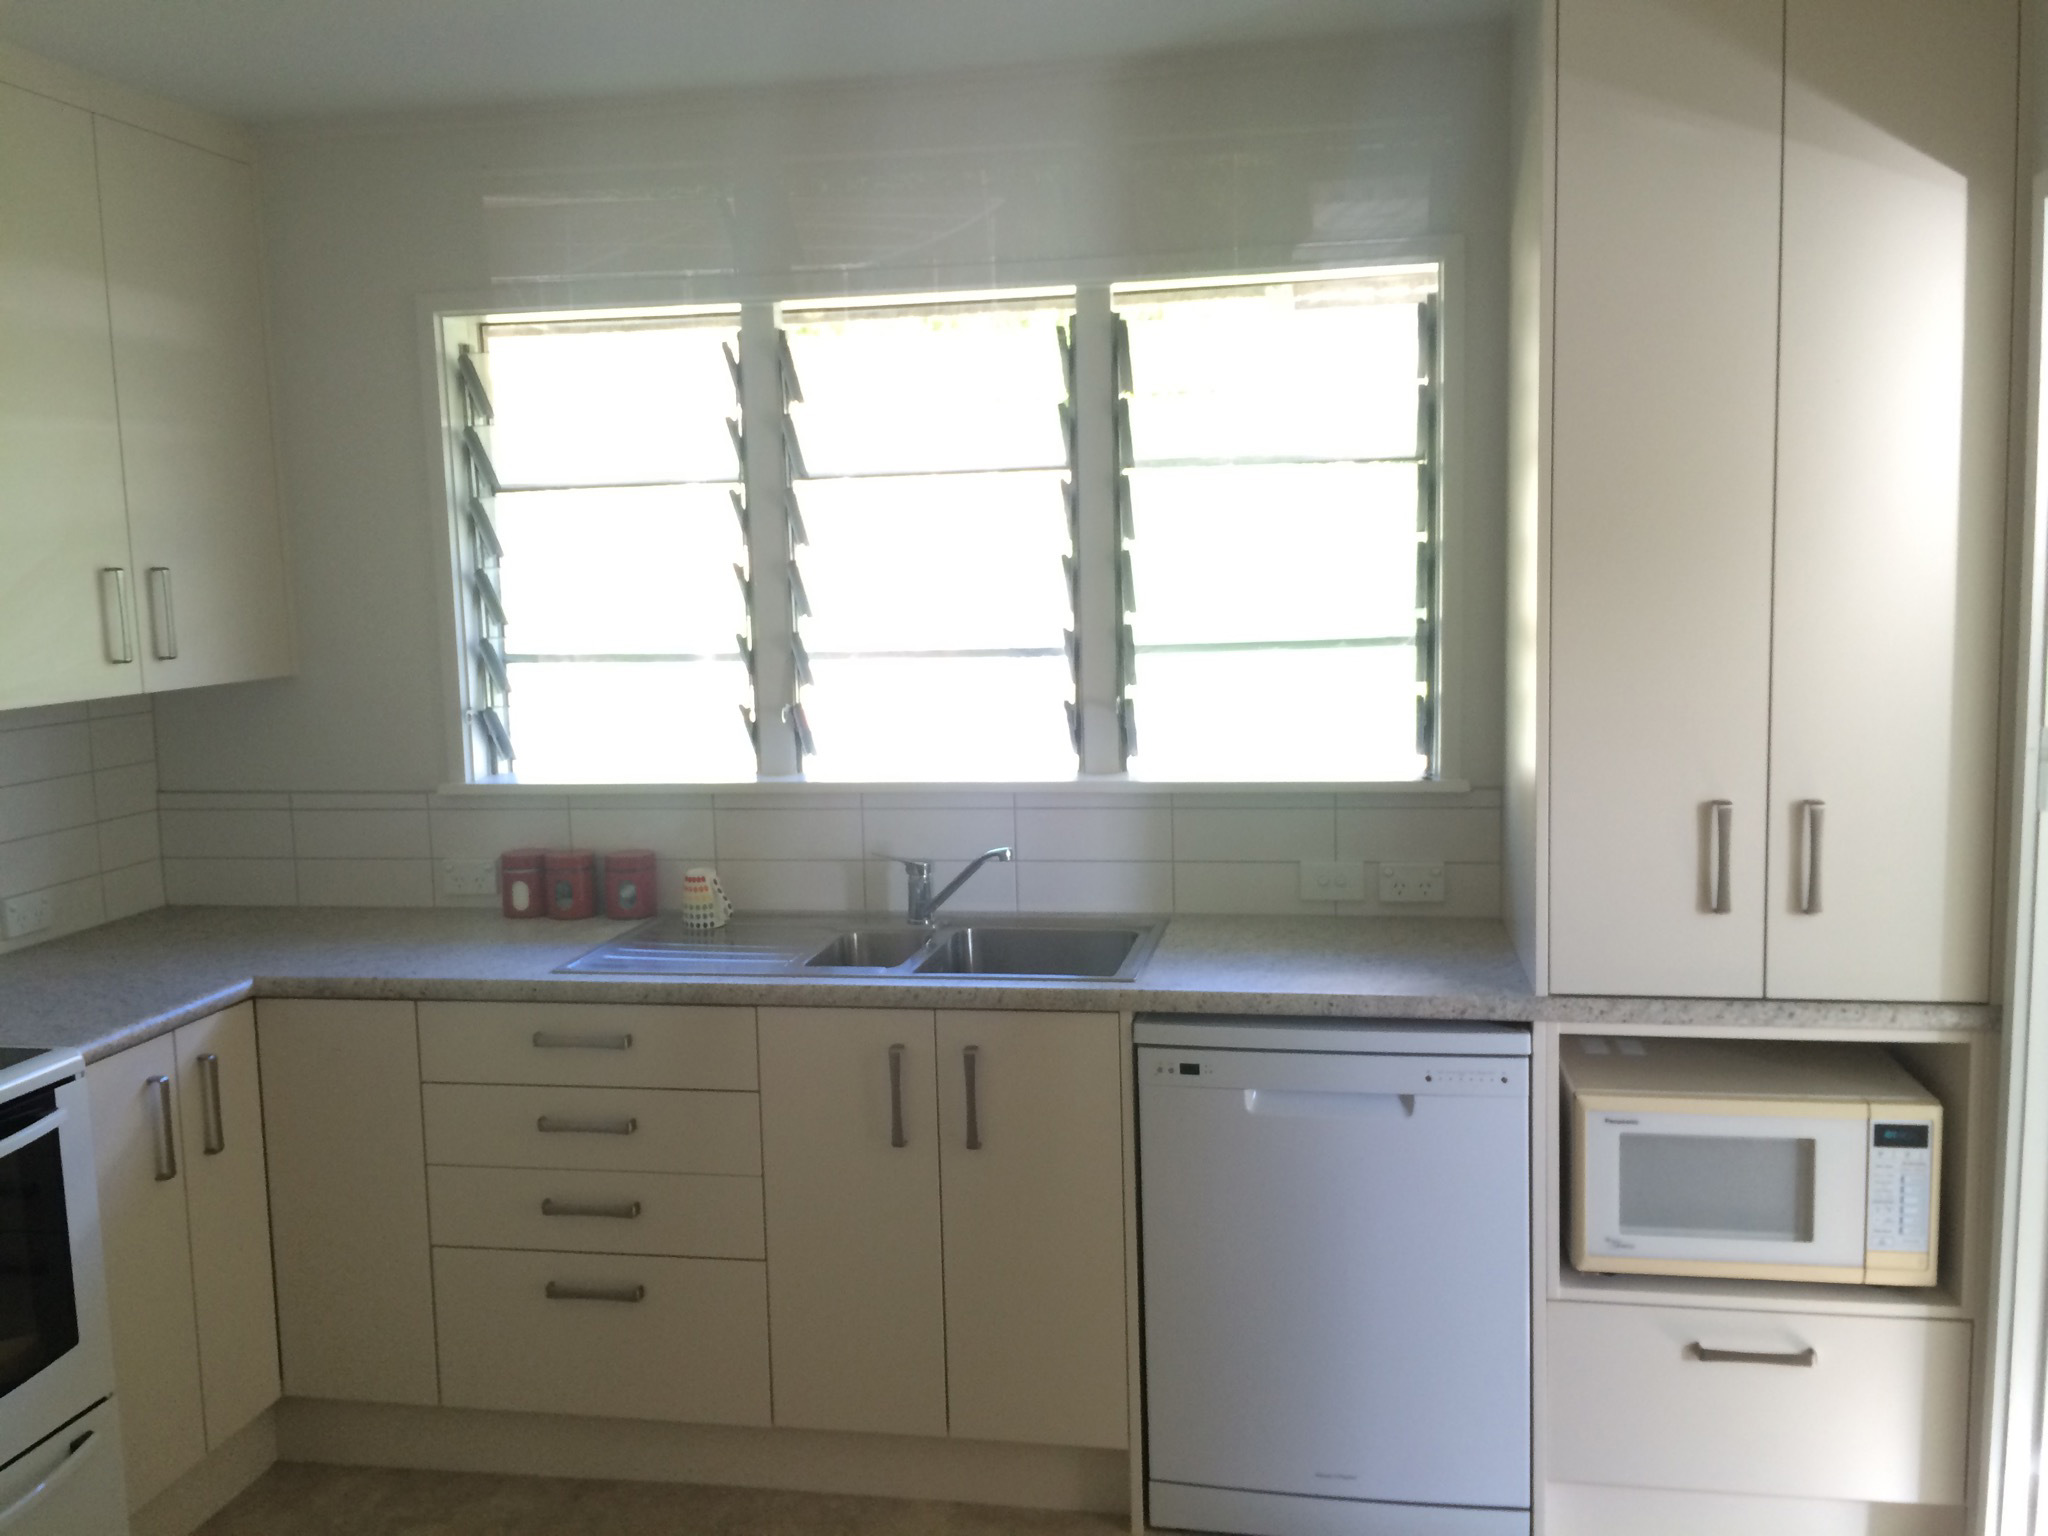 Bathrooms & Kitchens renovation in Kawerau Avenue, Belmont